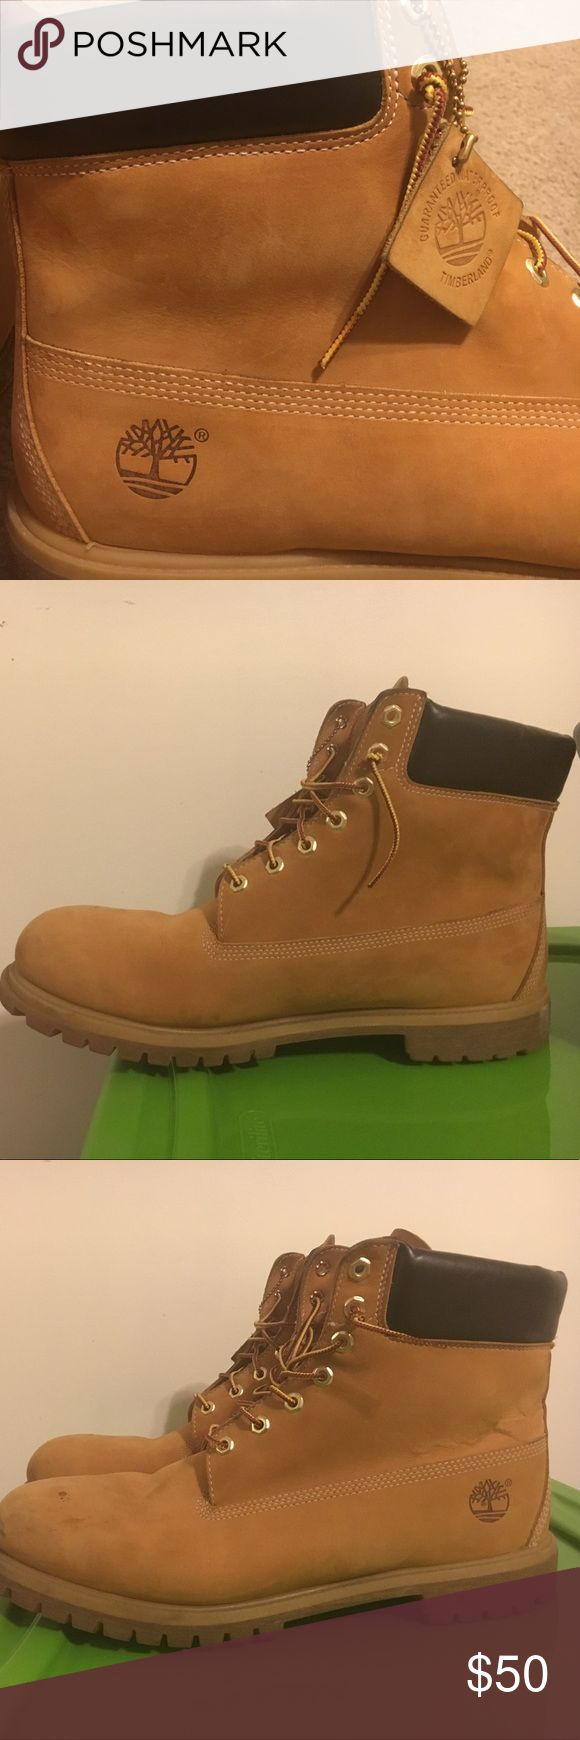 Gently used men Timberland Waterproof boots. Gently used waterproof boot few stains clean them up and they will look brand new. No need to buy a new pair when you can own these . But plenty of wear left. Make a reasonable offer. Wheat color Timberland Shoes Boots